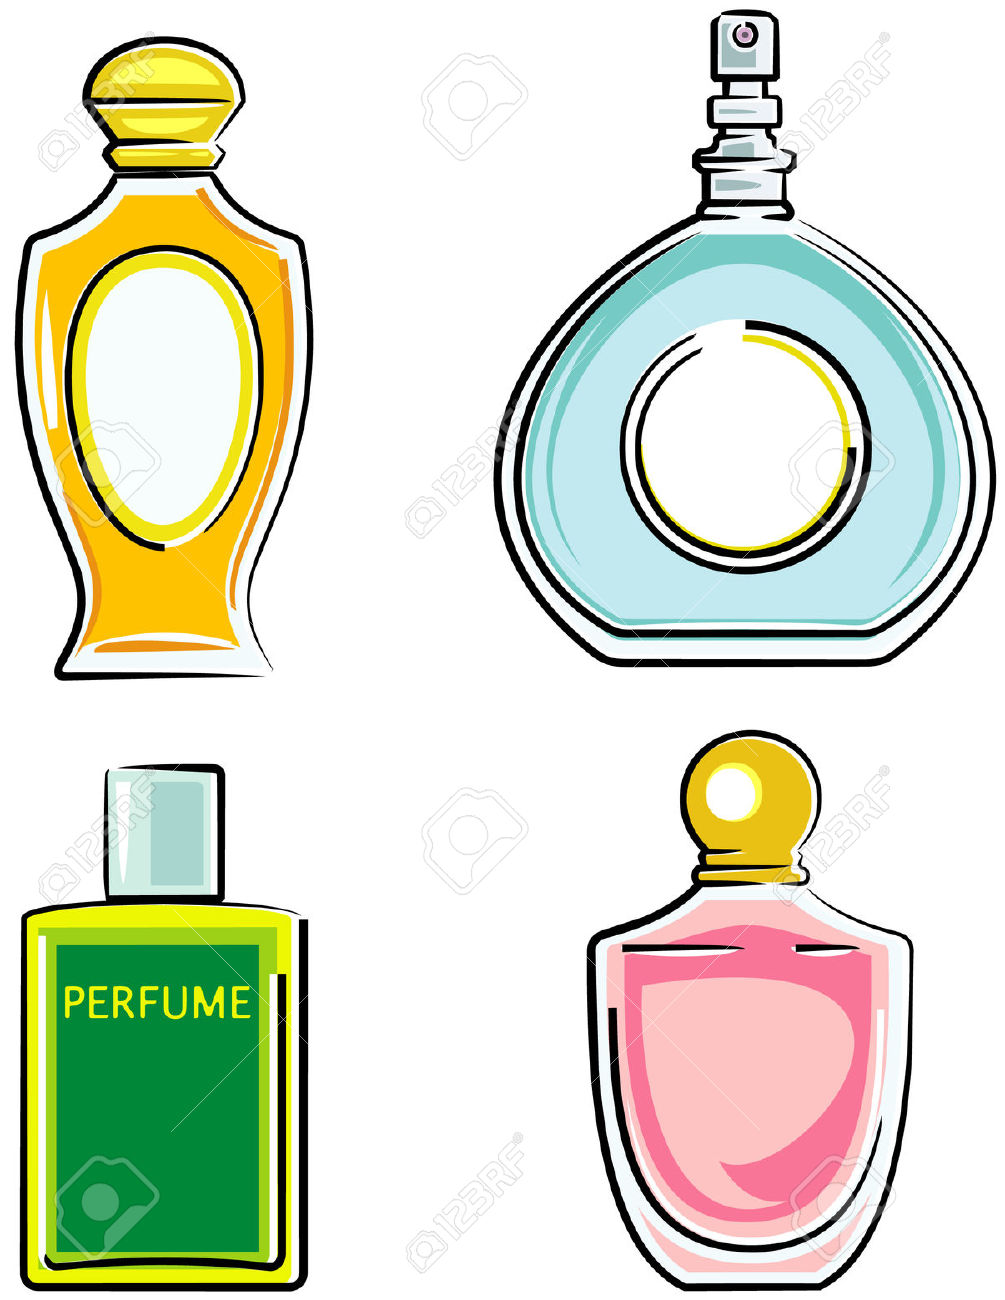 Perfume bottles clipart - Clipground